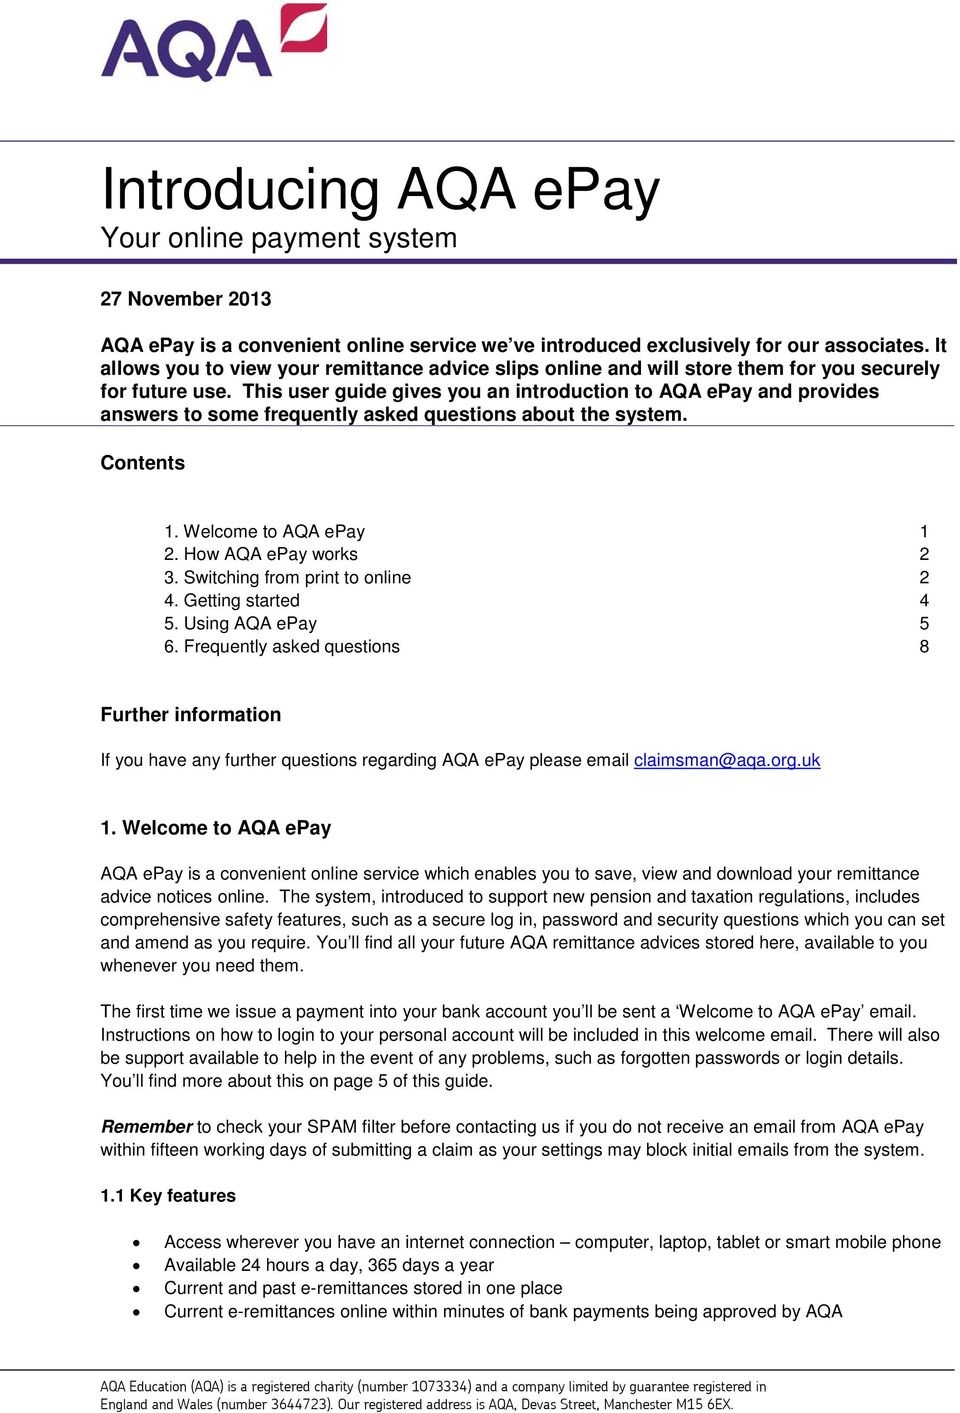 Introducing AQA epay Your online payment system PDF – Remittance Advice Slip